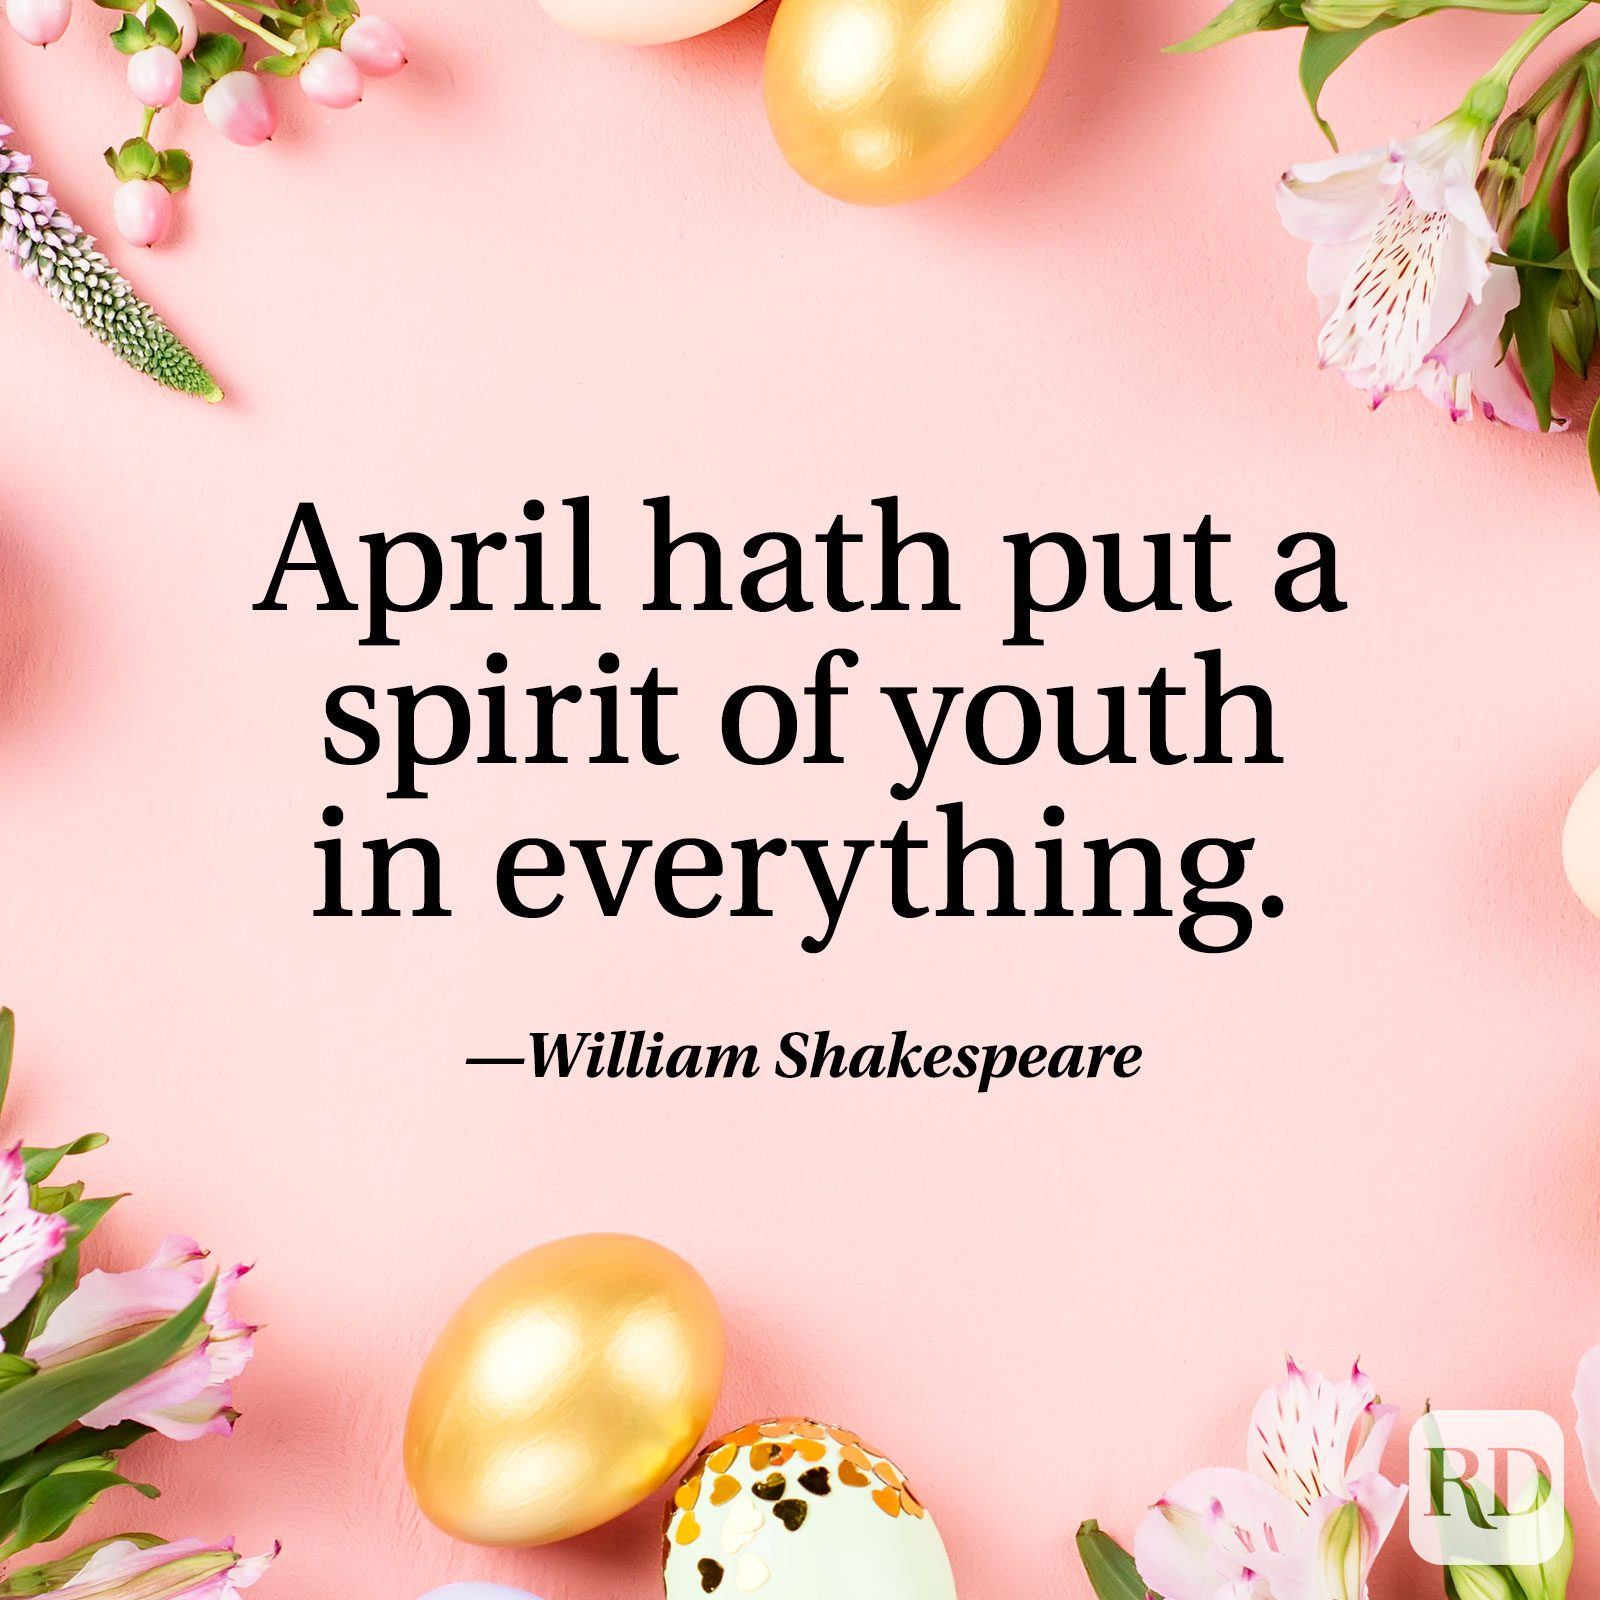 """April hath put a spirit of youth in everything.""— William Shakespeare"